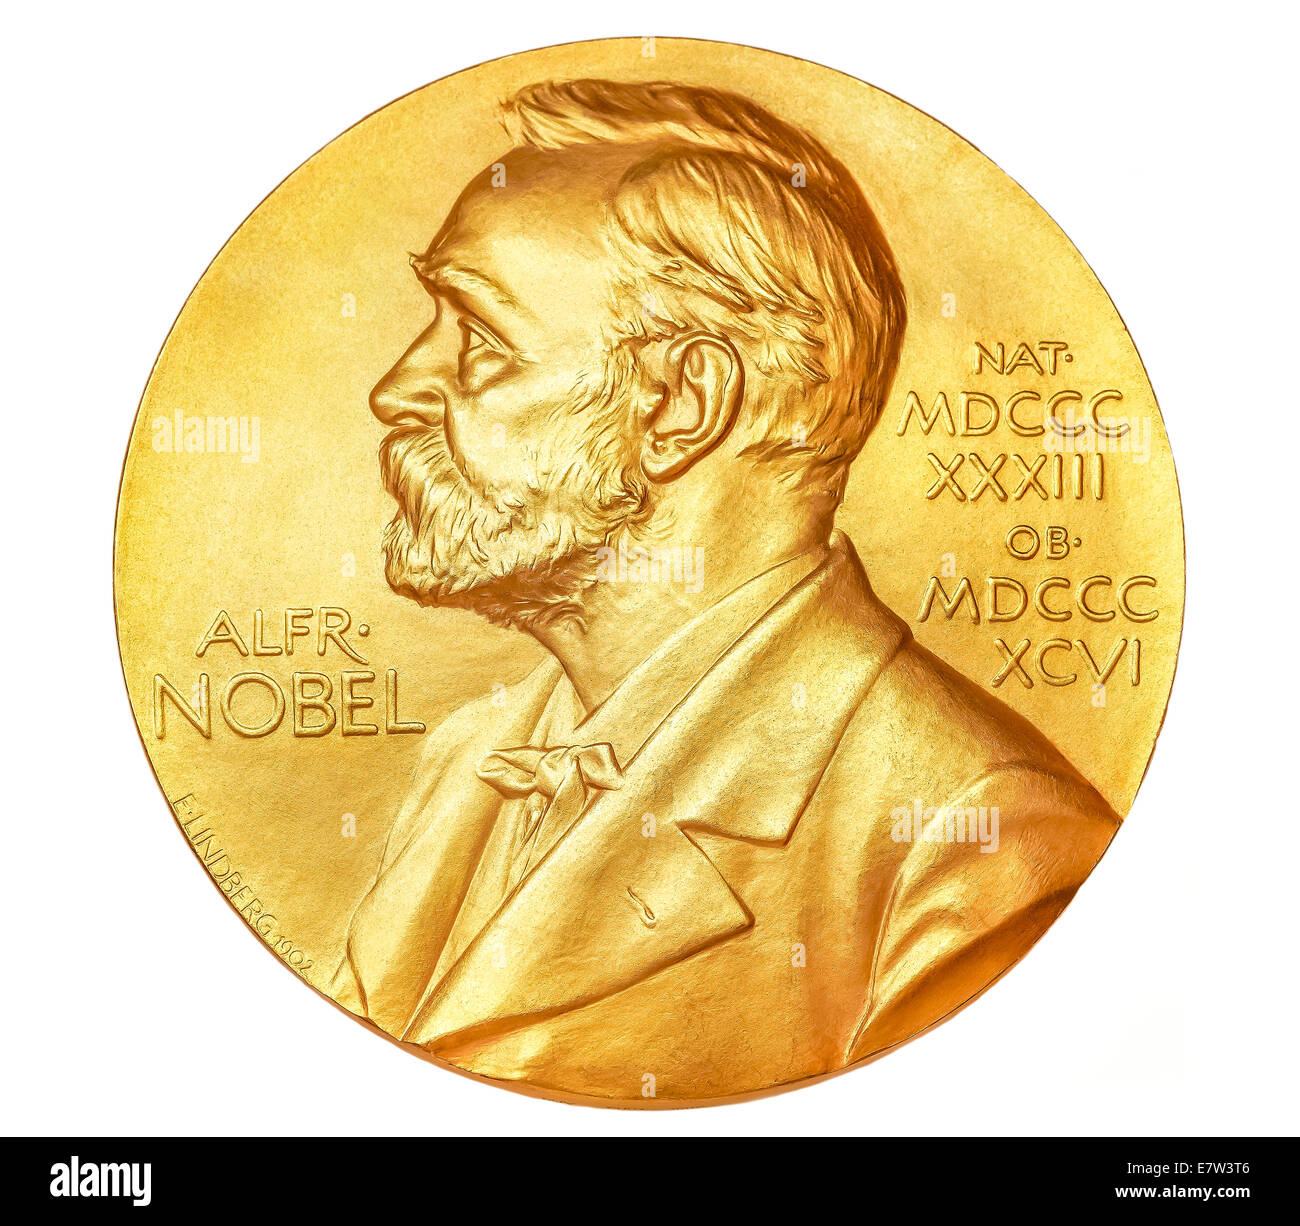 Nobel Prize Medal cut-out cut out cutout isolated on a white background. - Stock Image